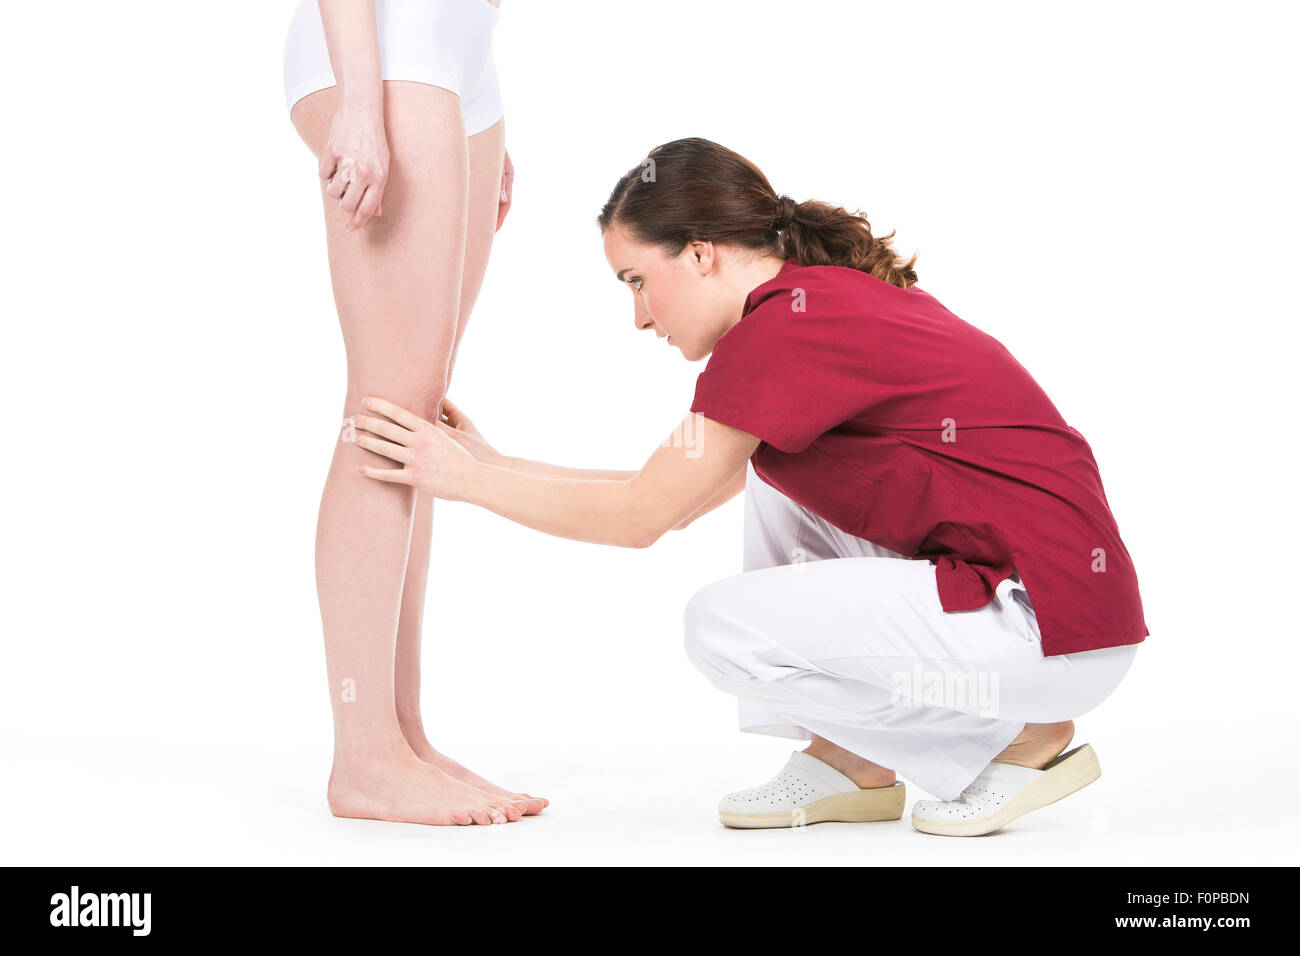 physiotherapist doing a knee evaluation to a woman patient - Stock Image